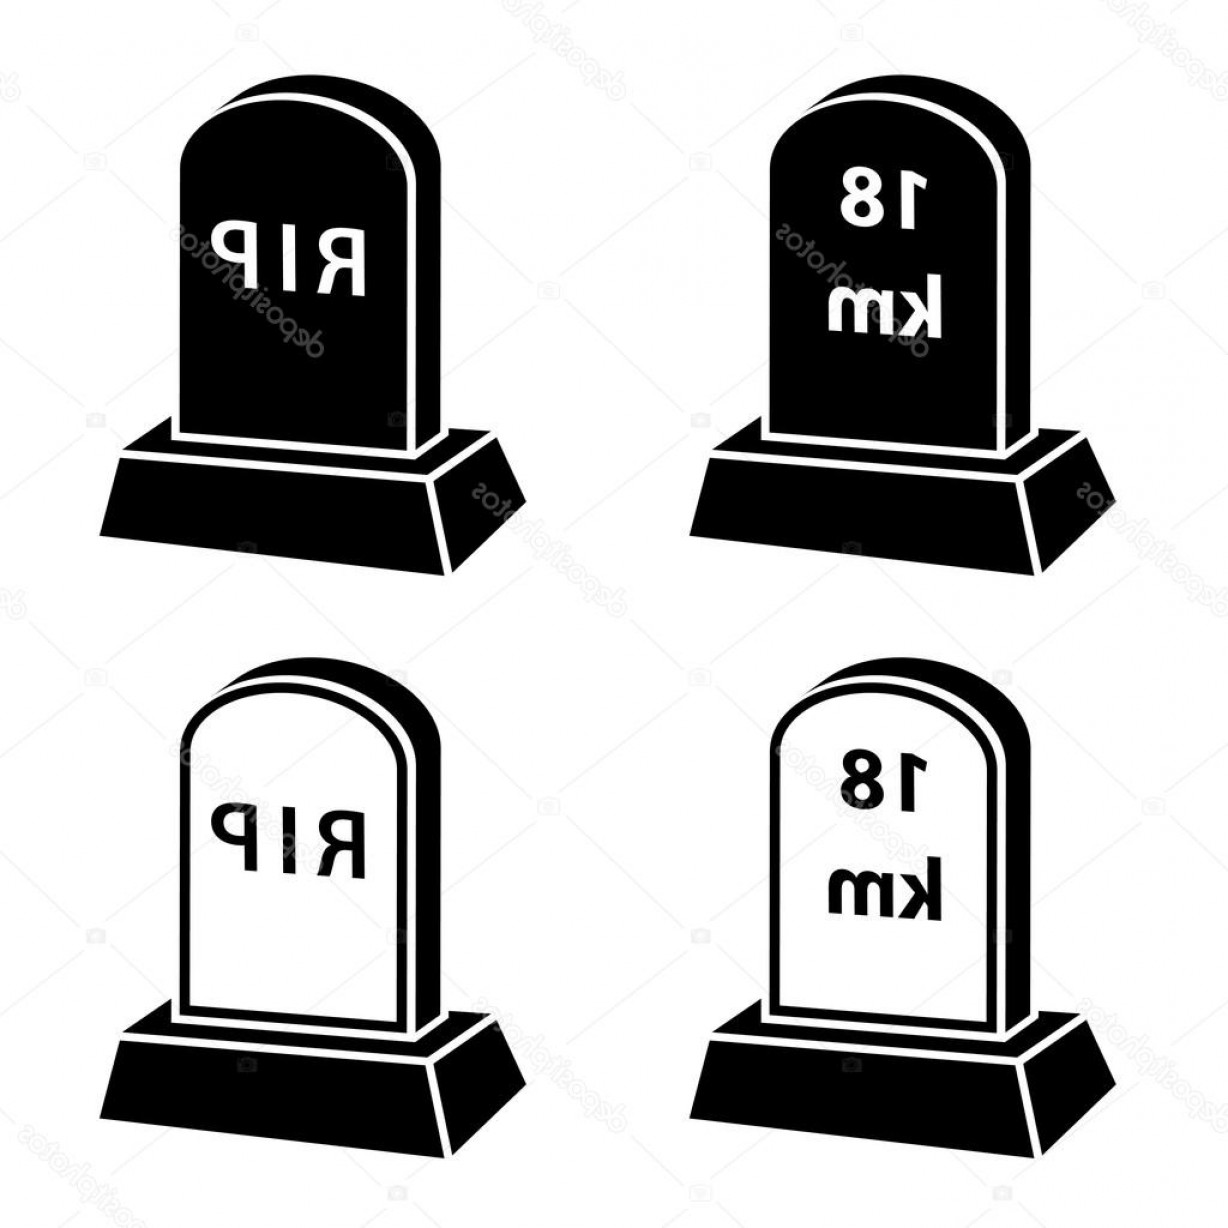 Gravestone Black And Whit Vector JPEG: Stock Illustration Black And White Milestone Tombstones